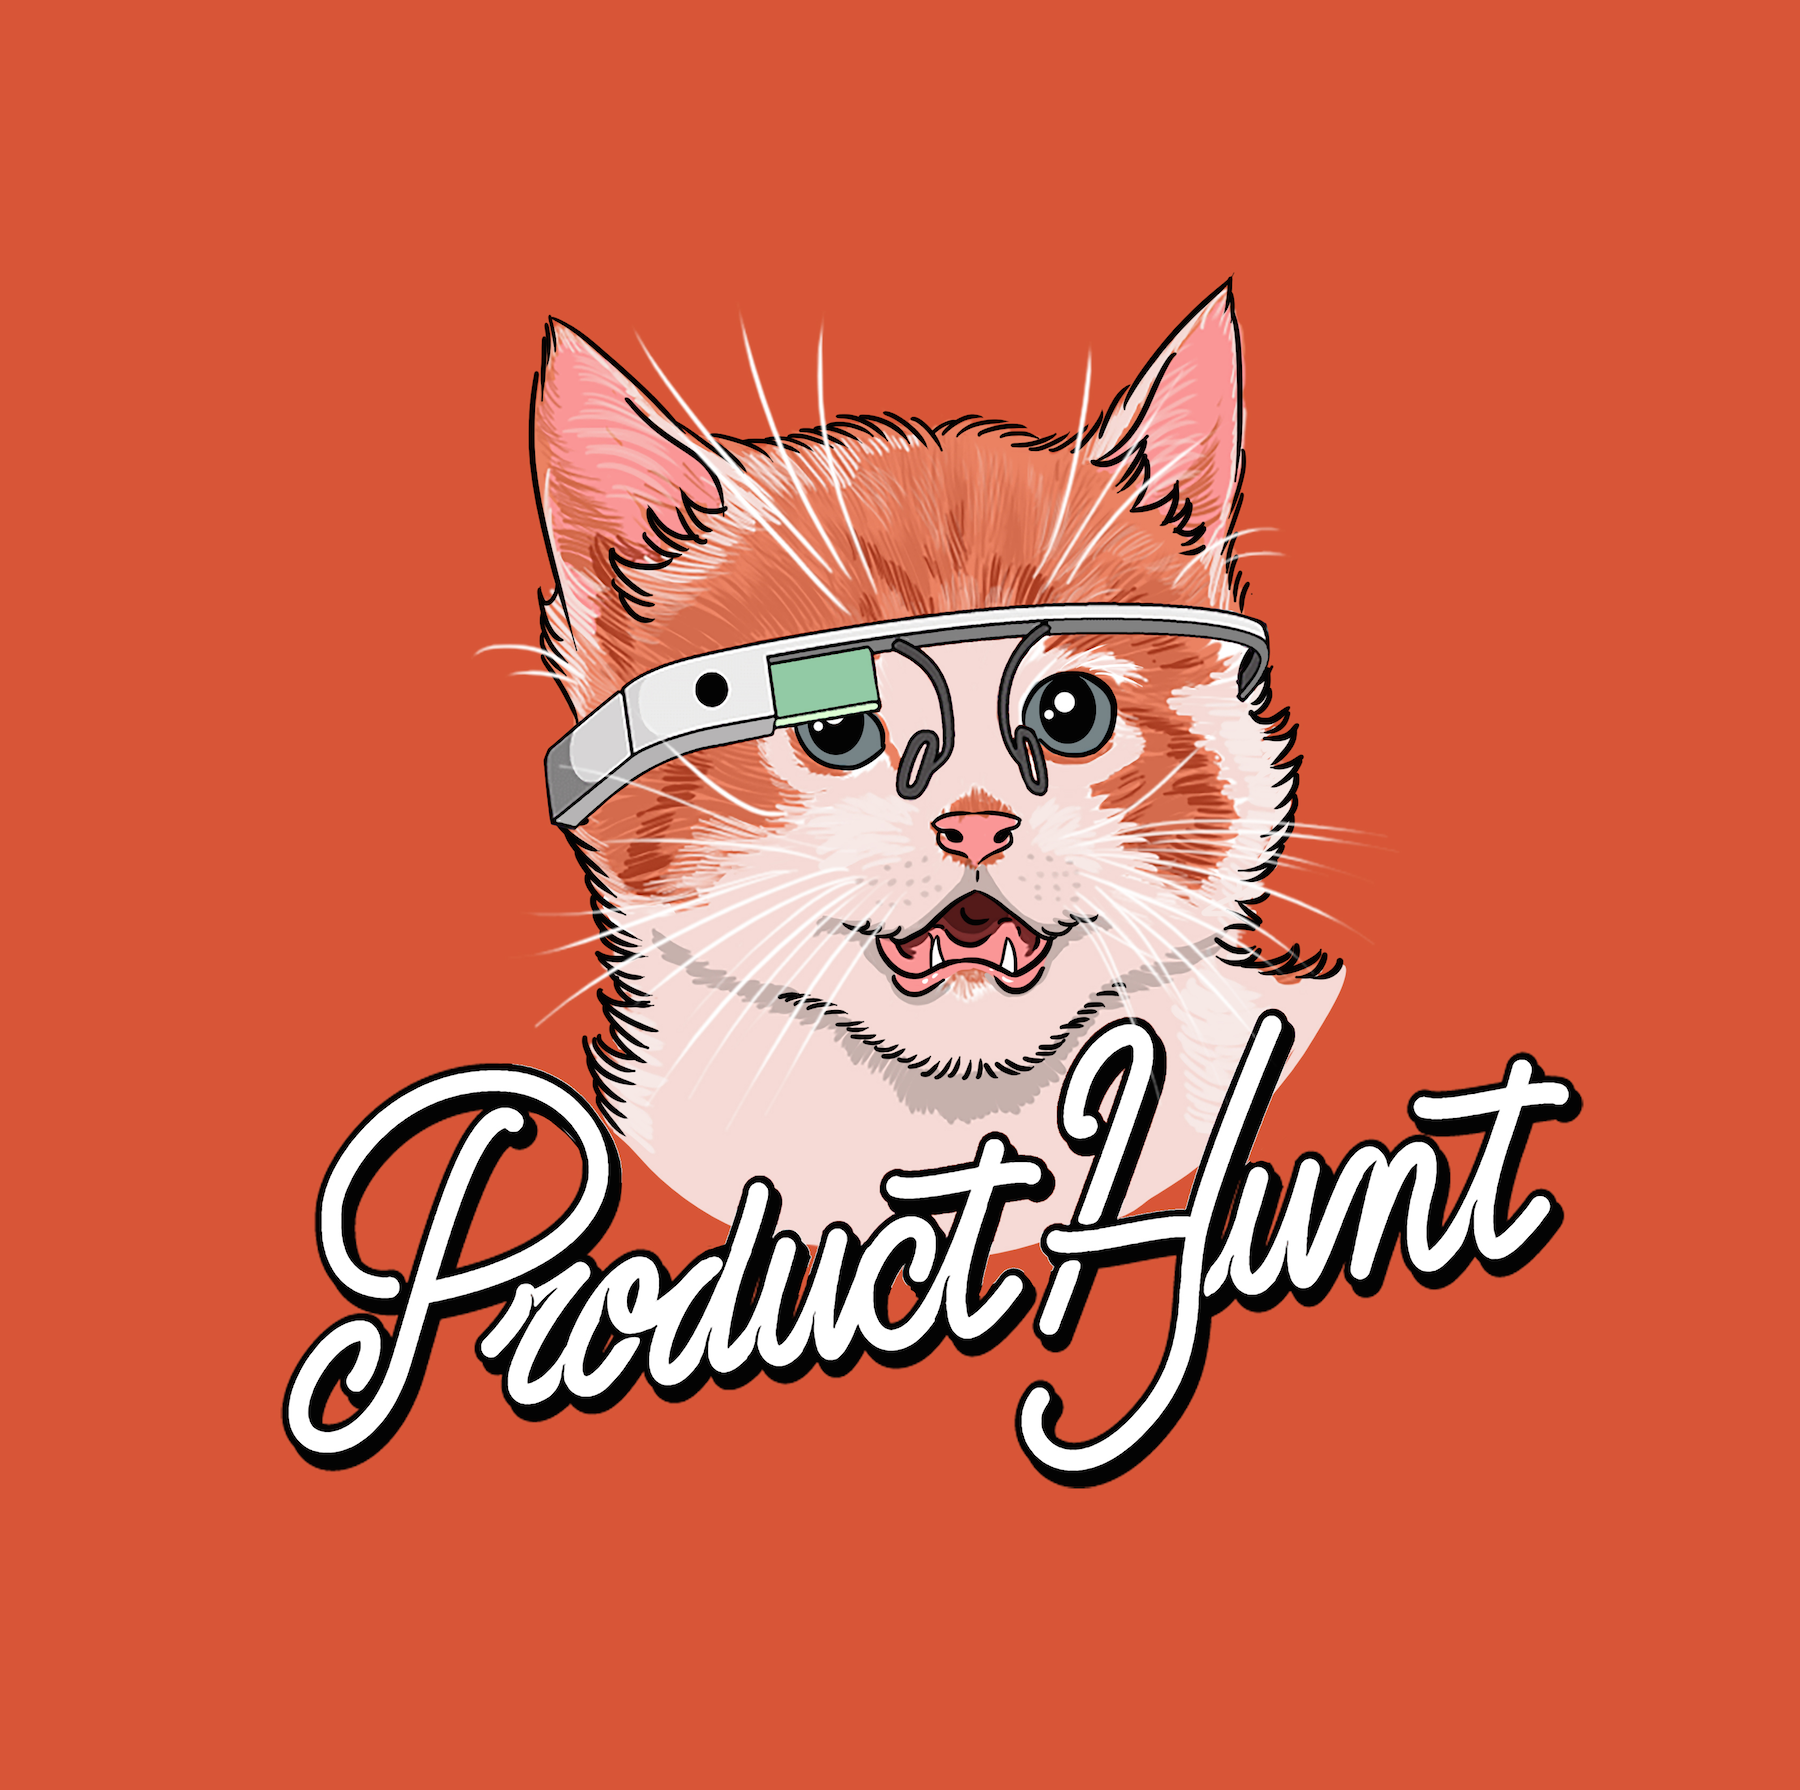 Product Hunt Team